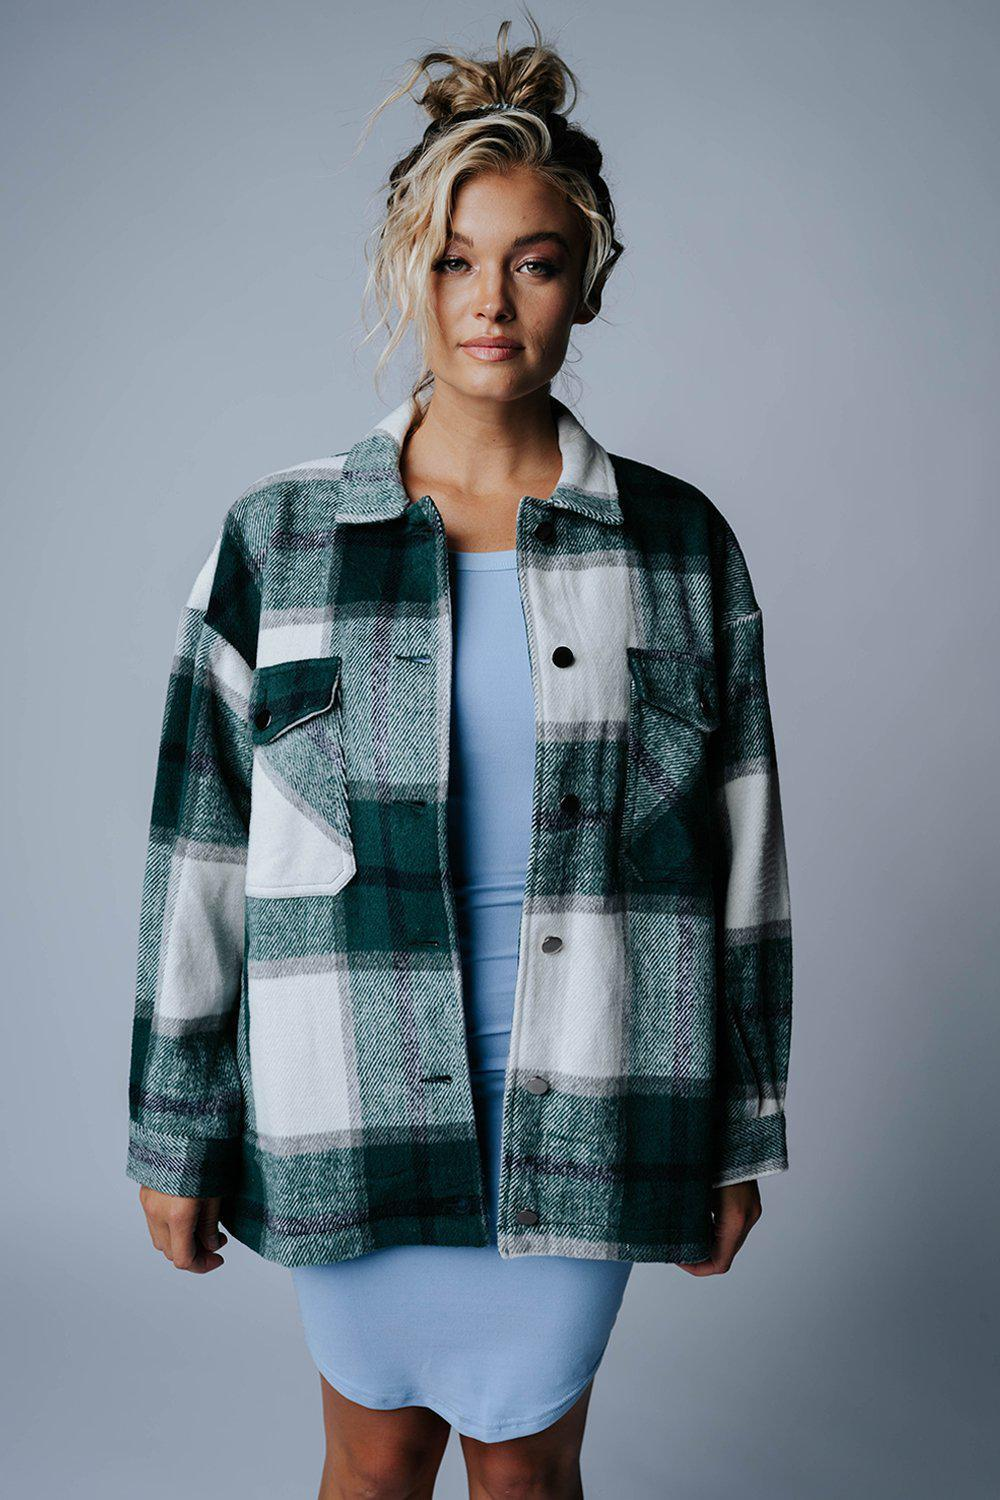 best_seller, Keepin' It Evergreen Plaid Jacket, Top, women's clothing, dresses, skirts, coats, jackets, shoes, boots, tops, tee shirts, jeans, free people, levi's, rollas, jumpsuits, bottoms, tops, sweaters, pullovers, pants, shorts, sweats,.